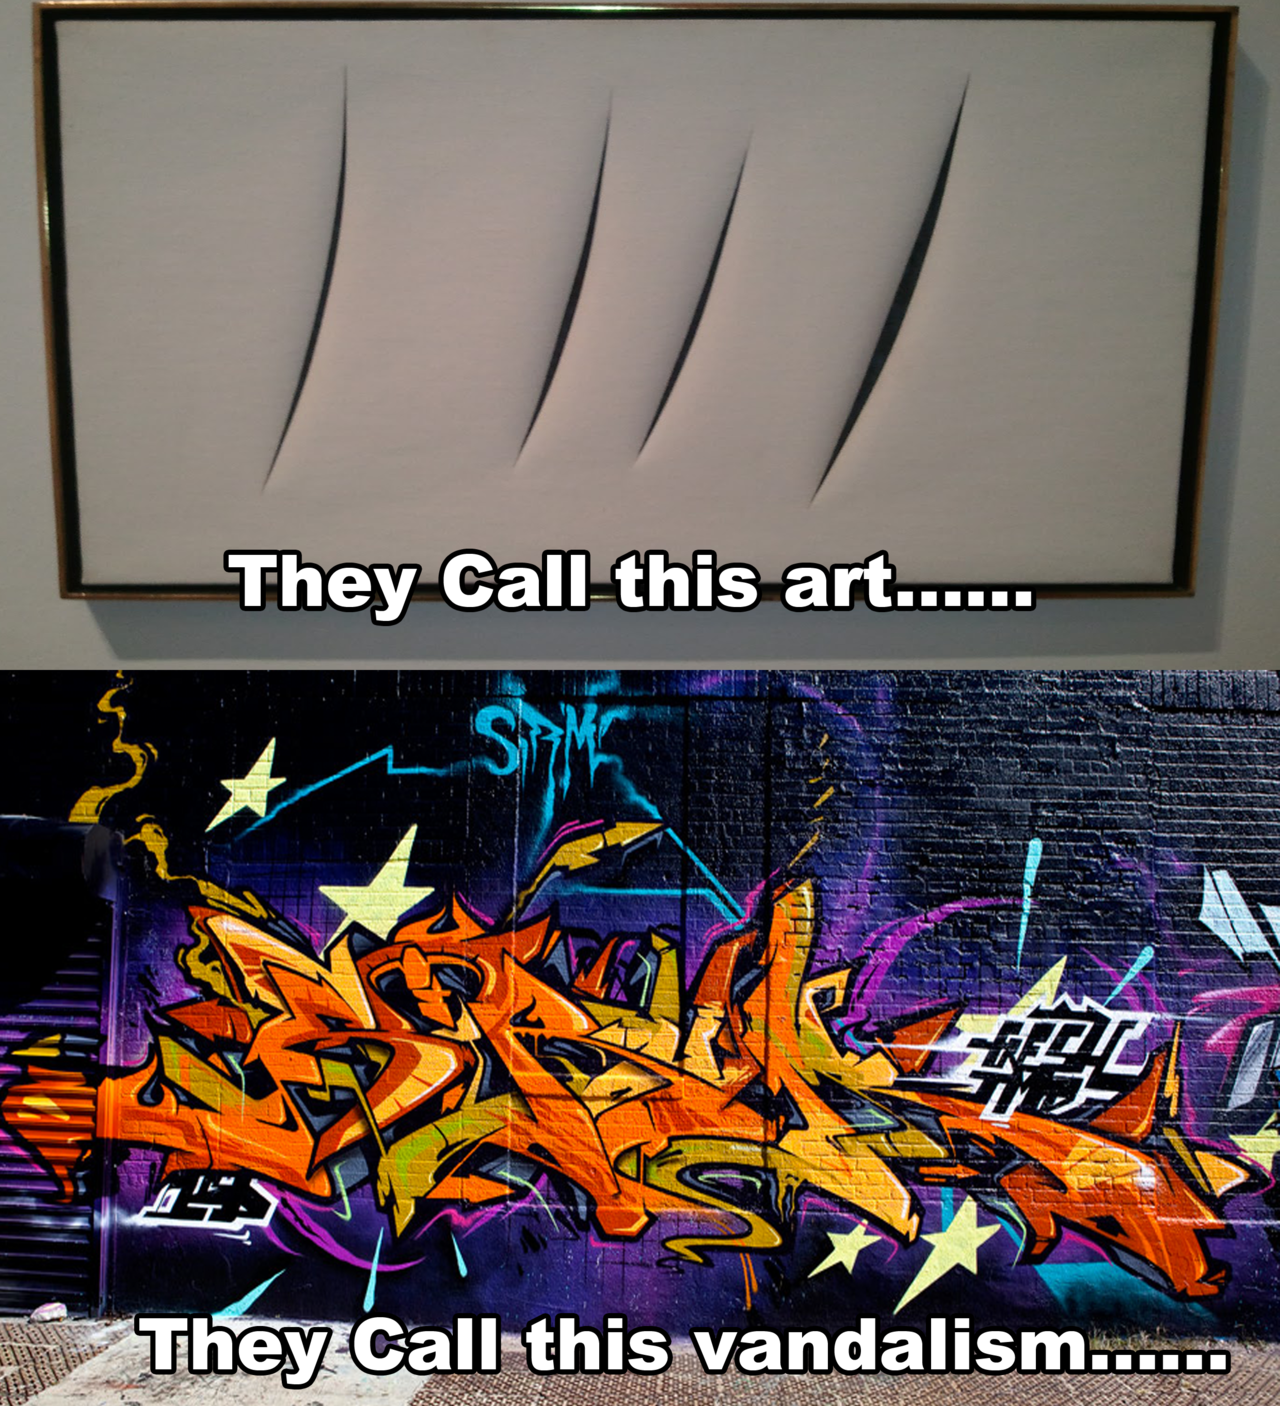 "chazzfox :      cijithegeek :      kyssthis16 :      yeezysdisciple :      youngbertreynolds :      thempress :           Maybe put it on a canvas instead of someone's property, and we can all be happy.     who paying for these canvases or the art programs so these kids can have that? Why should it matter if these run down buildings that never get fixed up anyway get graffiti'd?      Therein lies the issue. Art programs, both visual and performance based, are the first programs to be cut. Canvas ain't cheap. Neither are the supplies. Much of the graffiti that takes place IS on buildings that are run down. The gov't didn't place any value on these properties and yet get pissy with dudes ""vandalizing"" their shit. You can't have it both ways, ya dig.      My father was a garment contractor in LA. In the late 80s, he owned the building where he had his factory. He thought it would be a cool idea to commission local graffiti artists, usually young Black and Latino men looking to stay out of trouble, to paint murals on his buildings. After all, he runs a garment design/manufacturing company, and creative signage is great advertising.   One day, he showed up to the building and the city just painted over the murals without permission or notice.   First, the city told him he couldn't have graffiti art on HIS building because it brought down property value. After he complained, then they said: ok you can do this, but you need a permit. After he got the permit, then the city said: ok, but you can only use these artists.  Of course, these artists were all White graphic design students from USC, and of course they charged 3x more.   There is a prejudice against this type of art, and it's racial.  Banksy vandalizes folks buildings all the time, and folks treat him like the Messiah. He ain't doing nothing new that Black and Brown folks haven't done for decades.     This whole post…I just find it really interesting! And sad, too, but good thing to read.     I like what Banksy does, but I have to agree with the above. It's not just about the colour of the artist's skin, it's also about the prejudices of the audience.     Sarasota's ""Fast Life"" mural by MTO will be painted over."